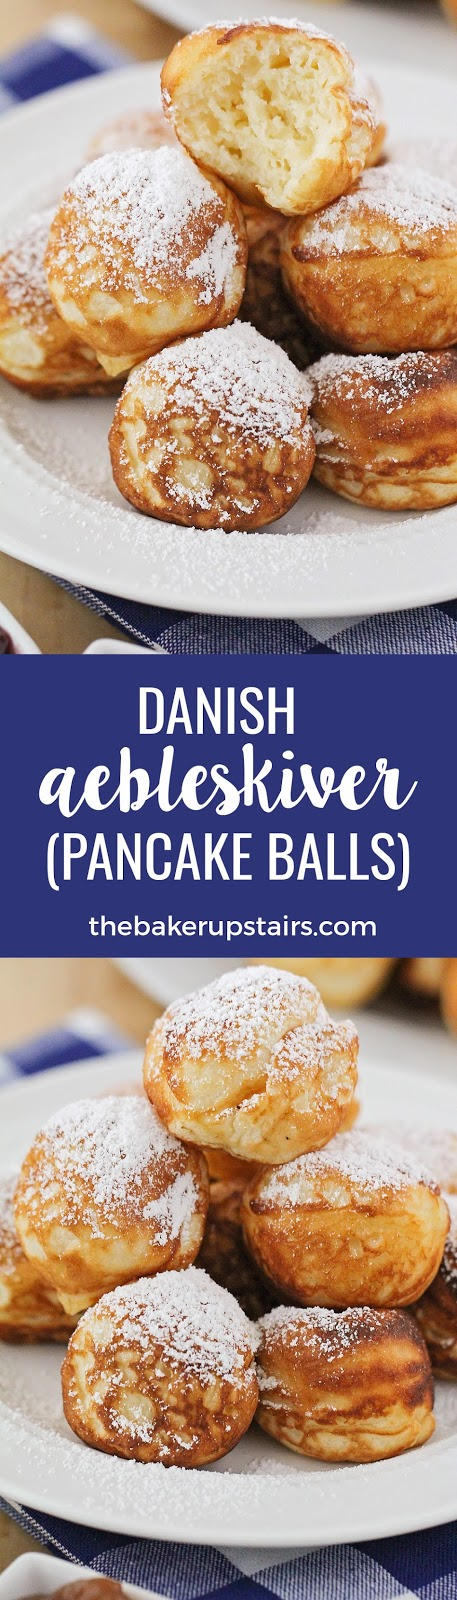 These Danish aebleskiver (pancake balls) are so delicious, and the perfect special occasion breakfast!